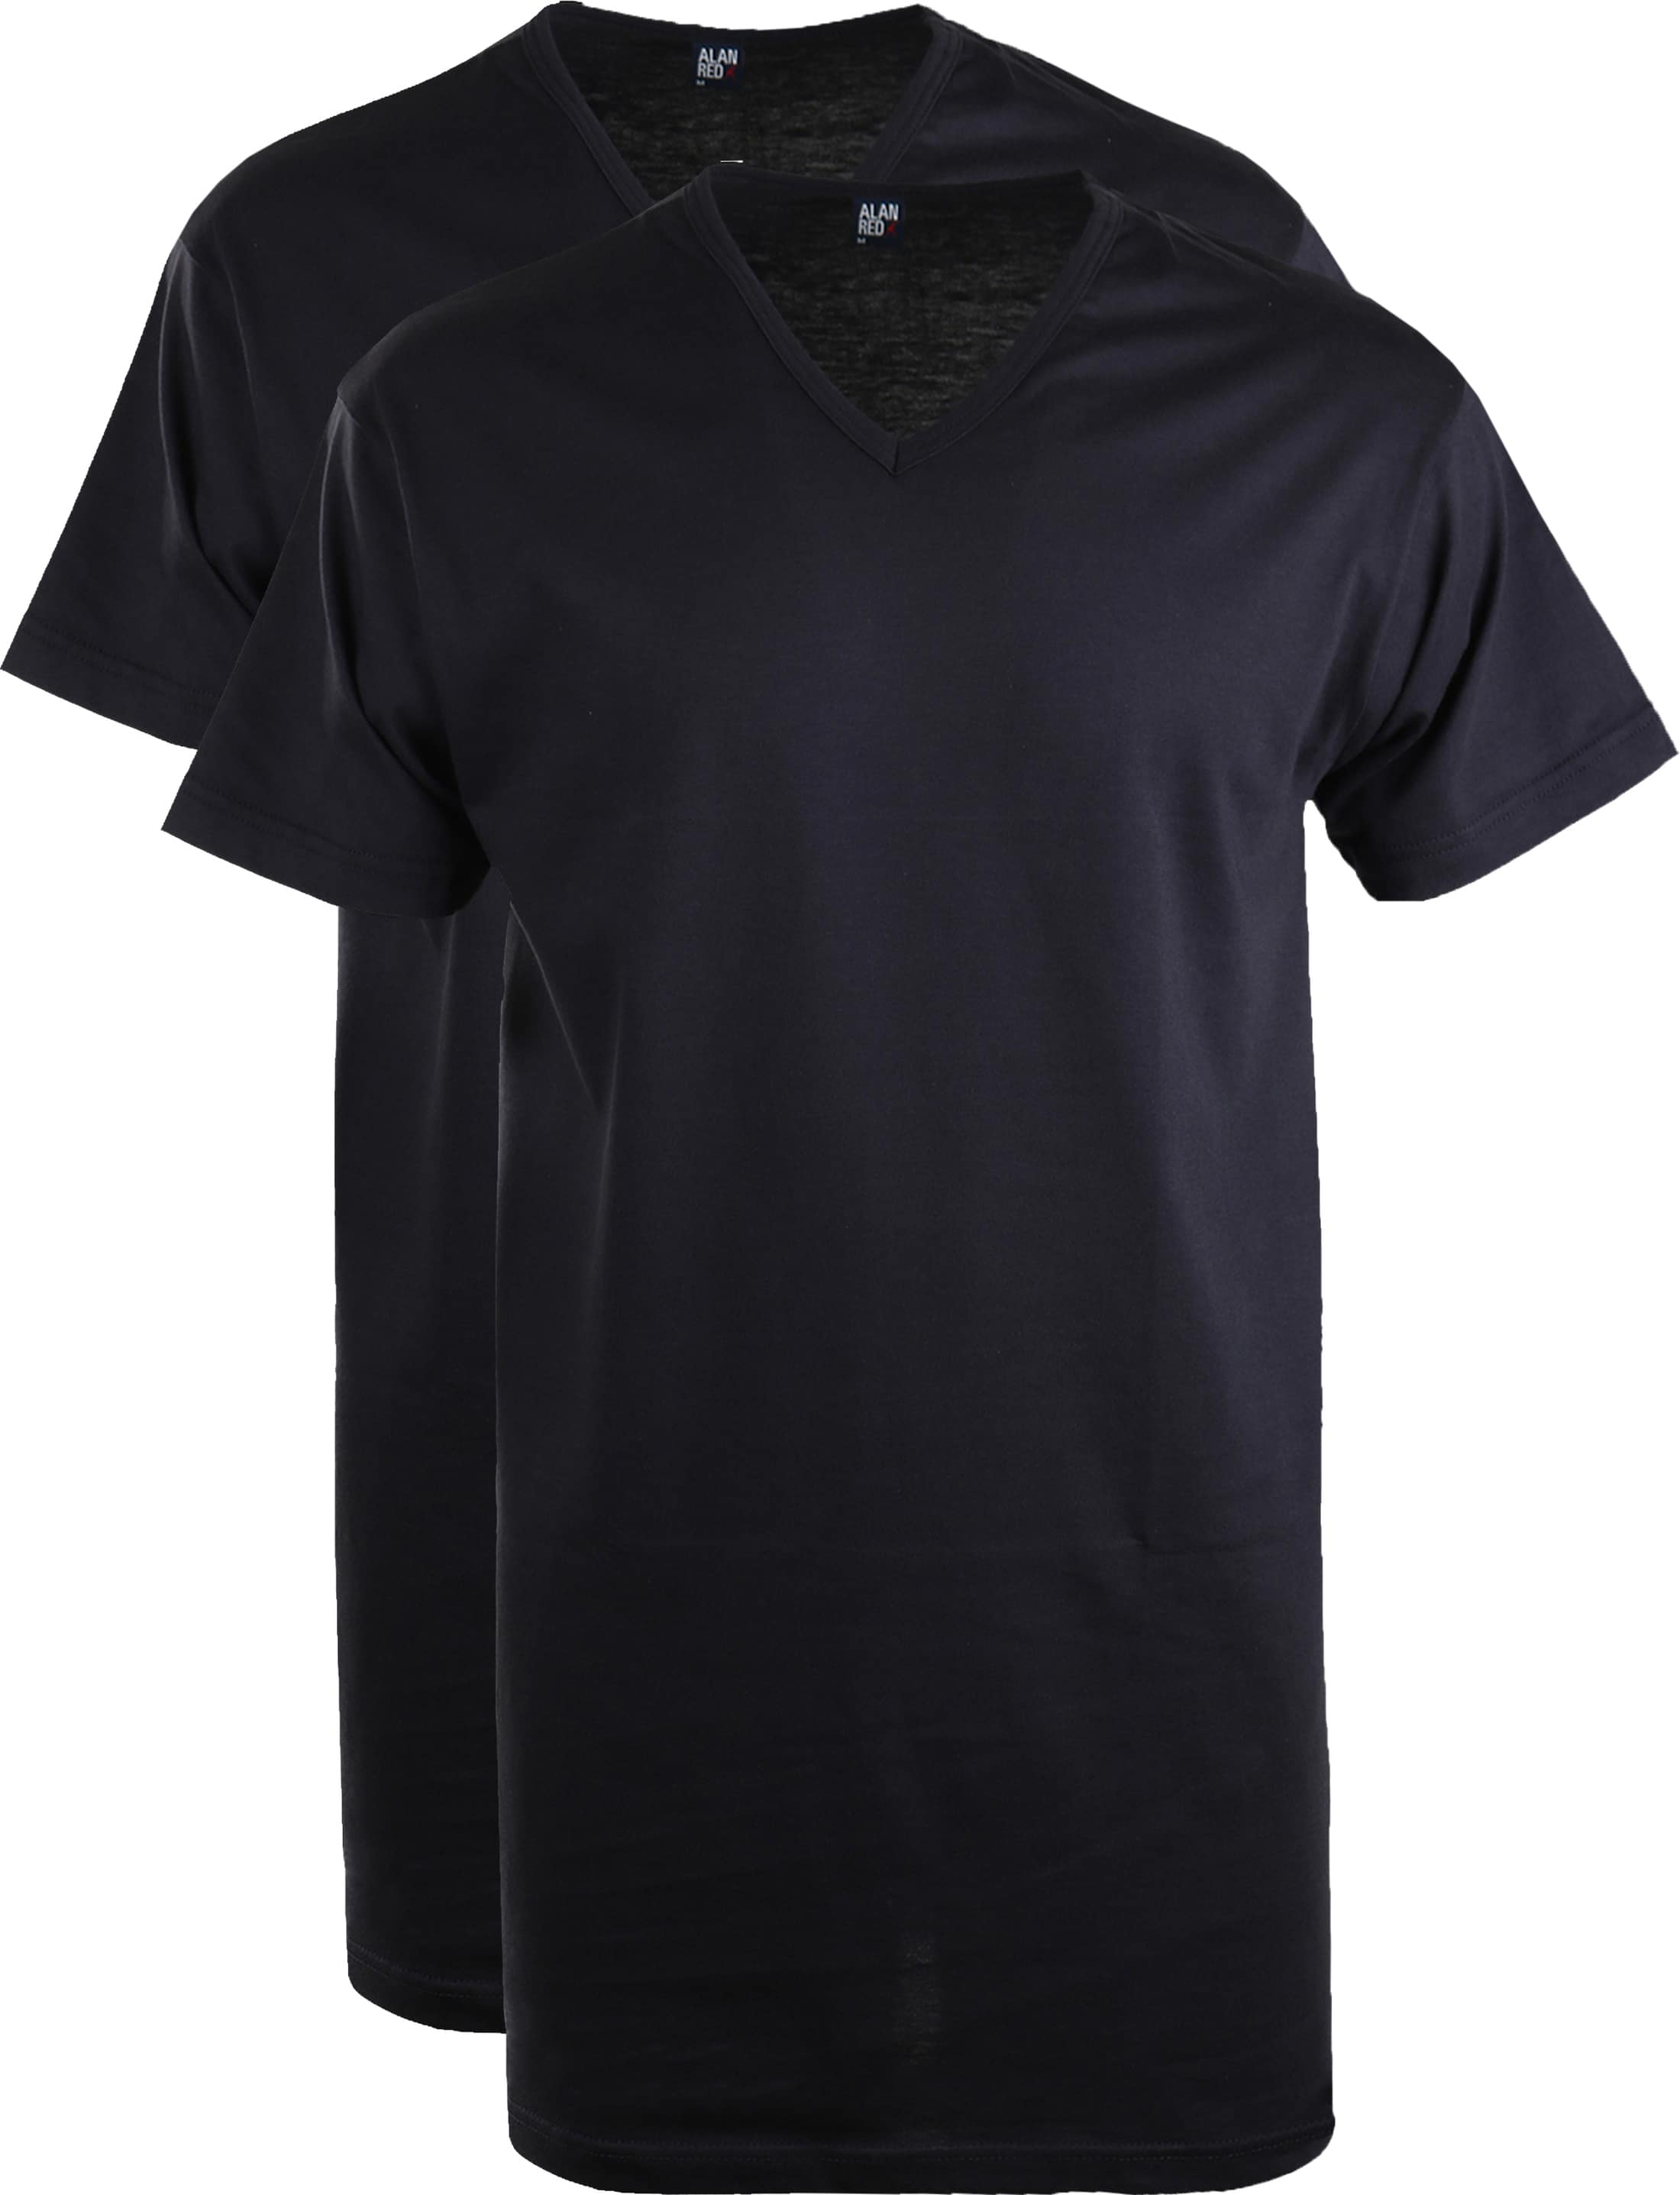 Alan Red Vermont Extra Long T-shirts Navy 2-Pack foto 0